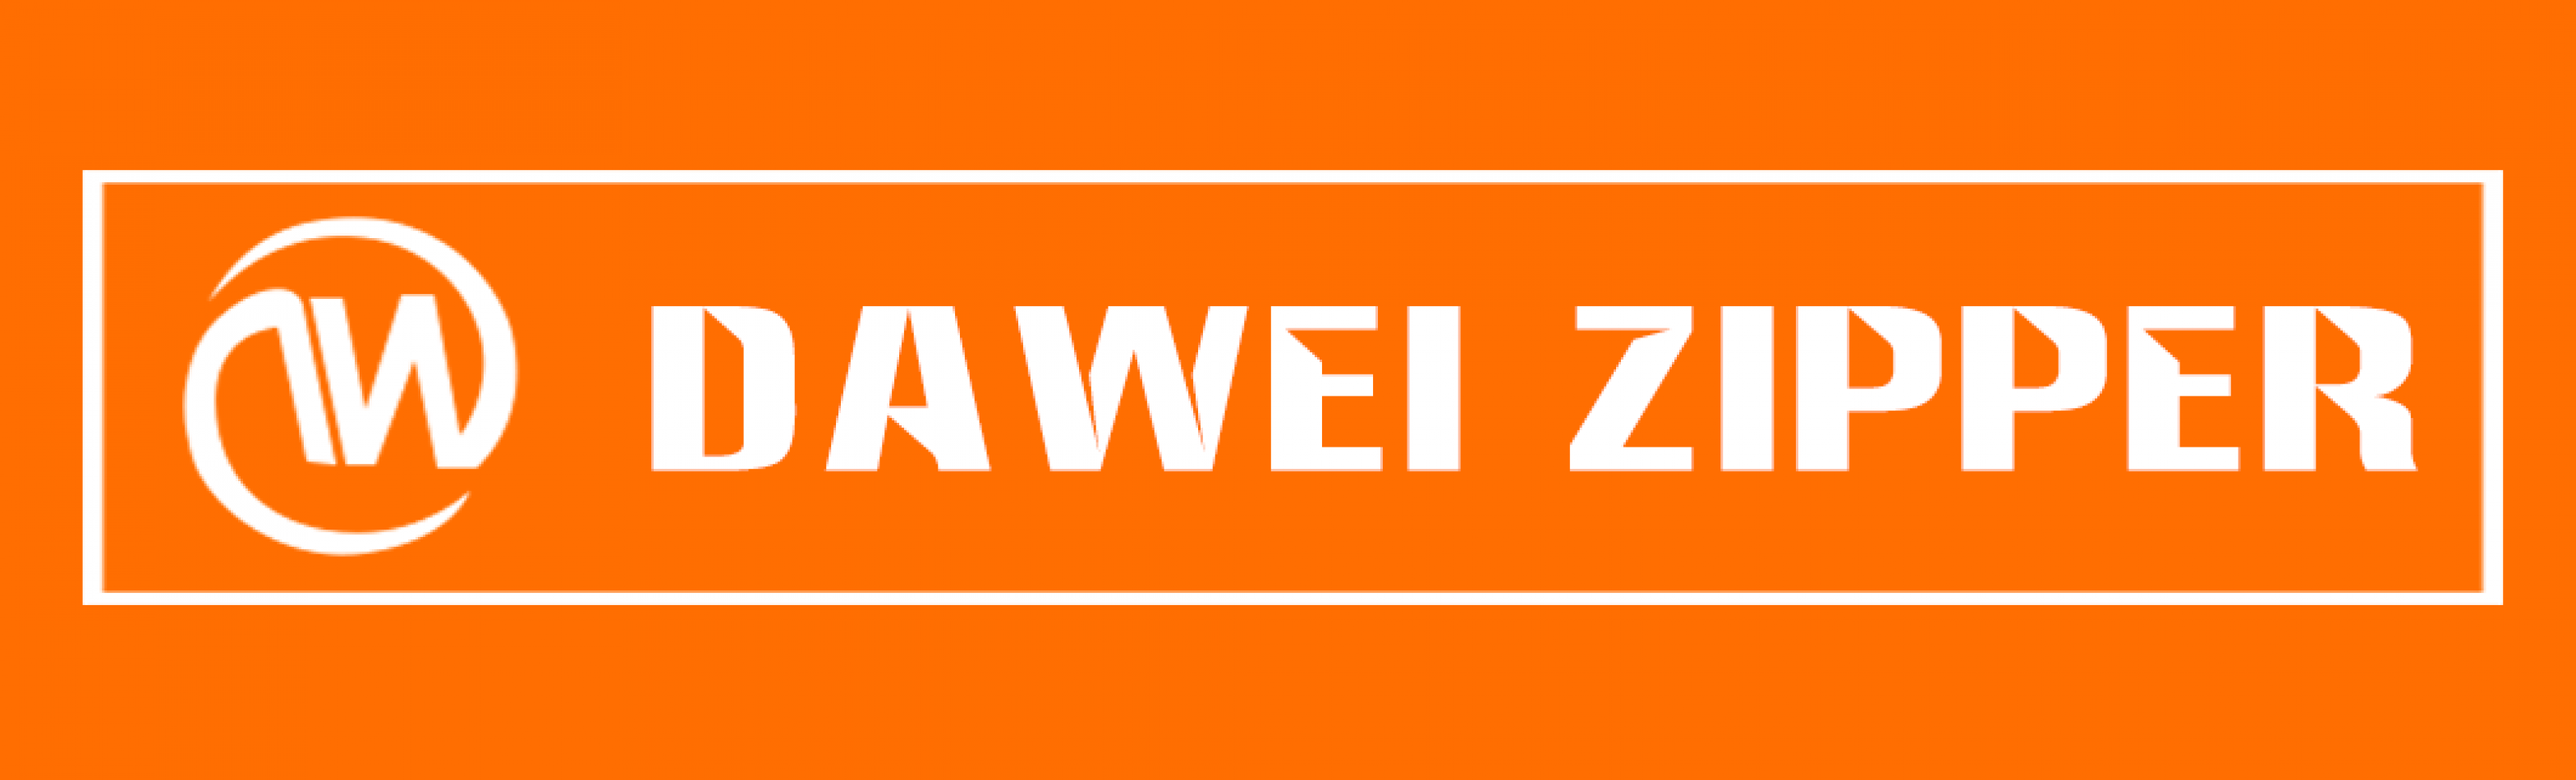 ZHEJIANG DAWEI ZIPPER CO., LTD